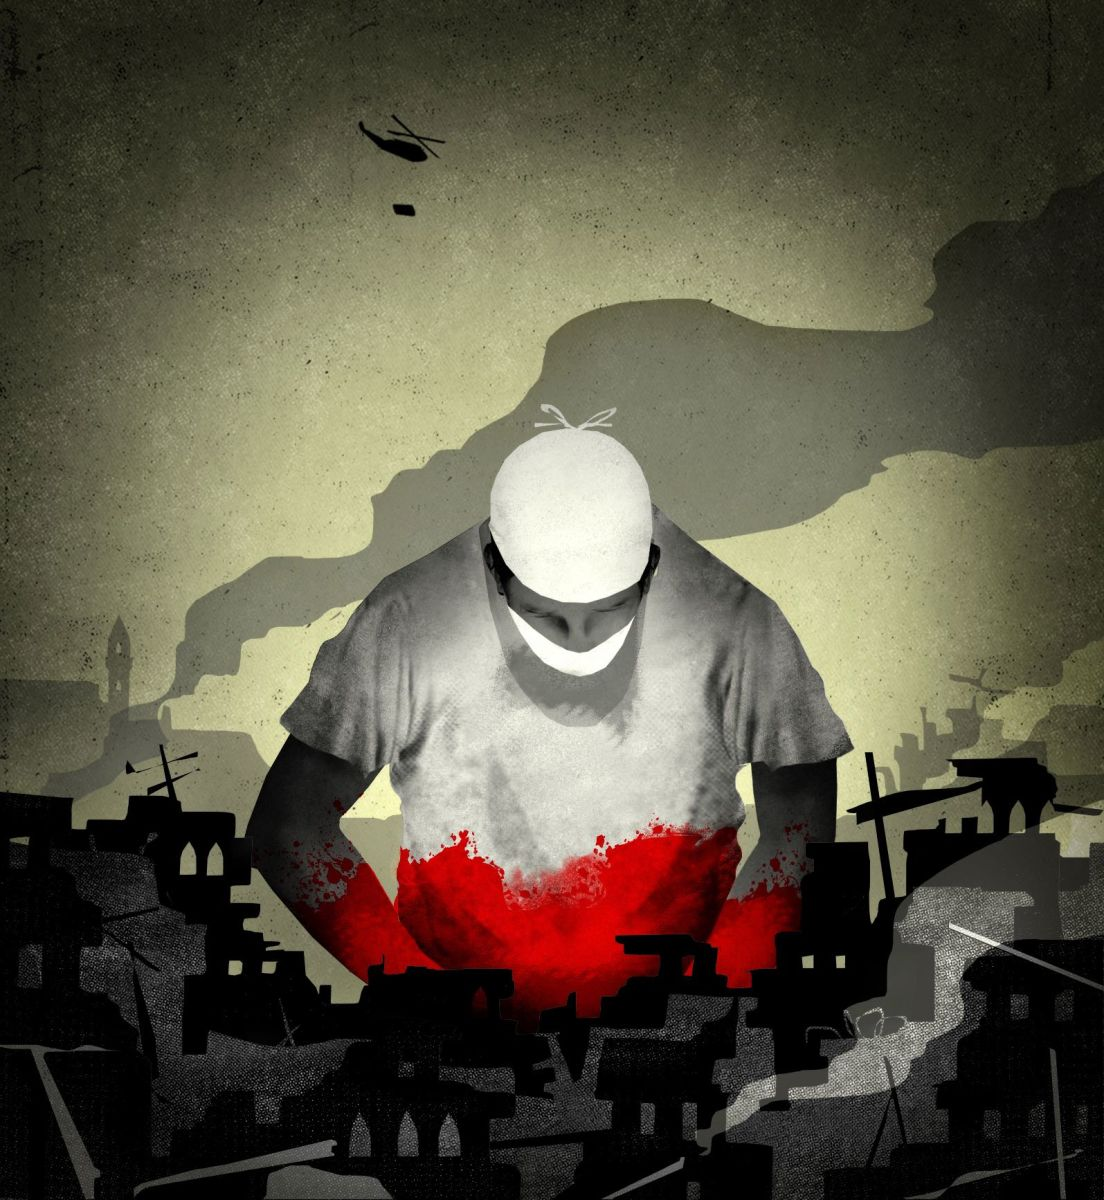 Assad's government has killed almost seven hundred medical personnel.